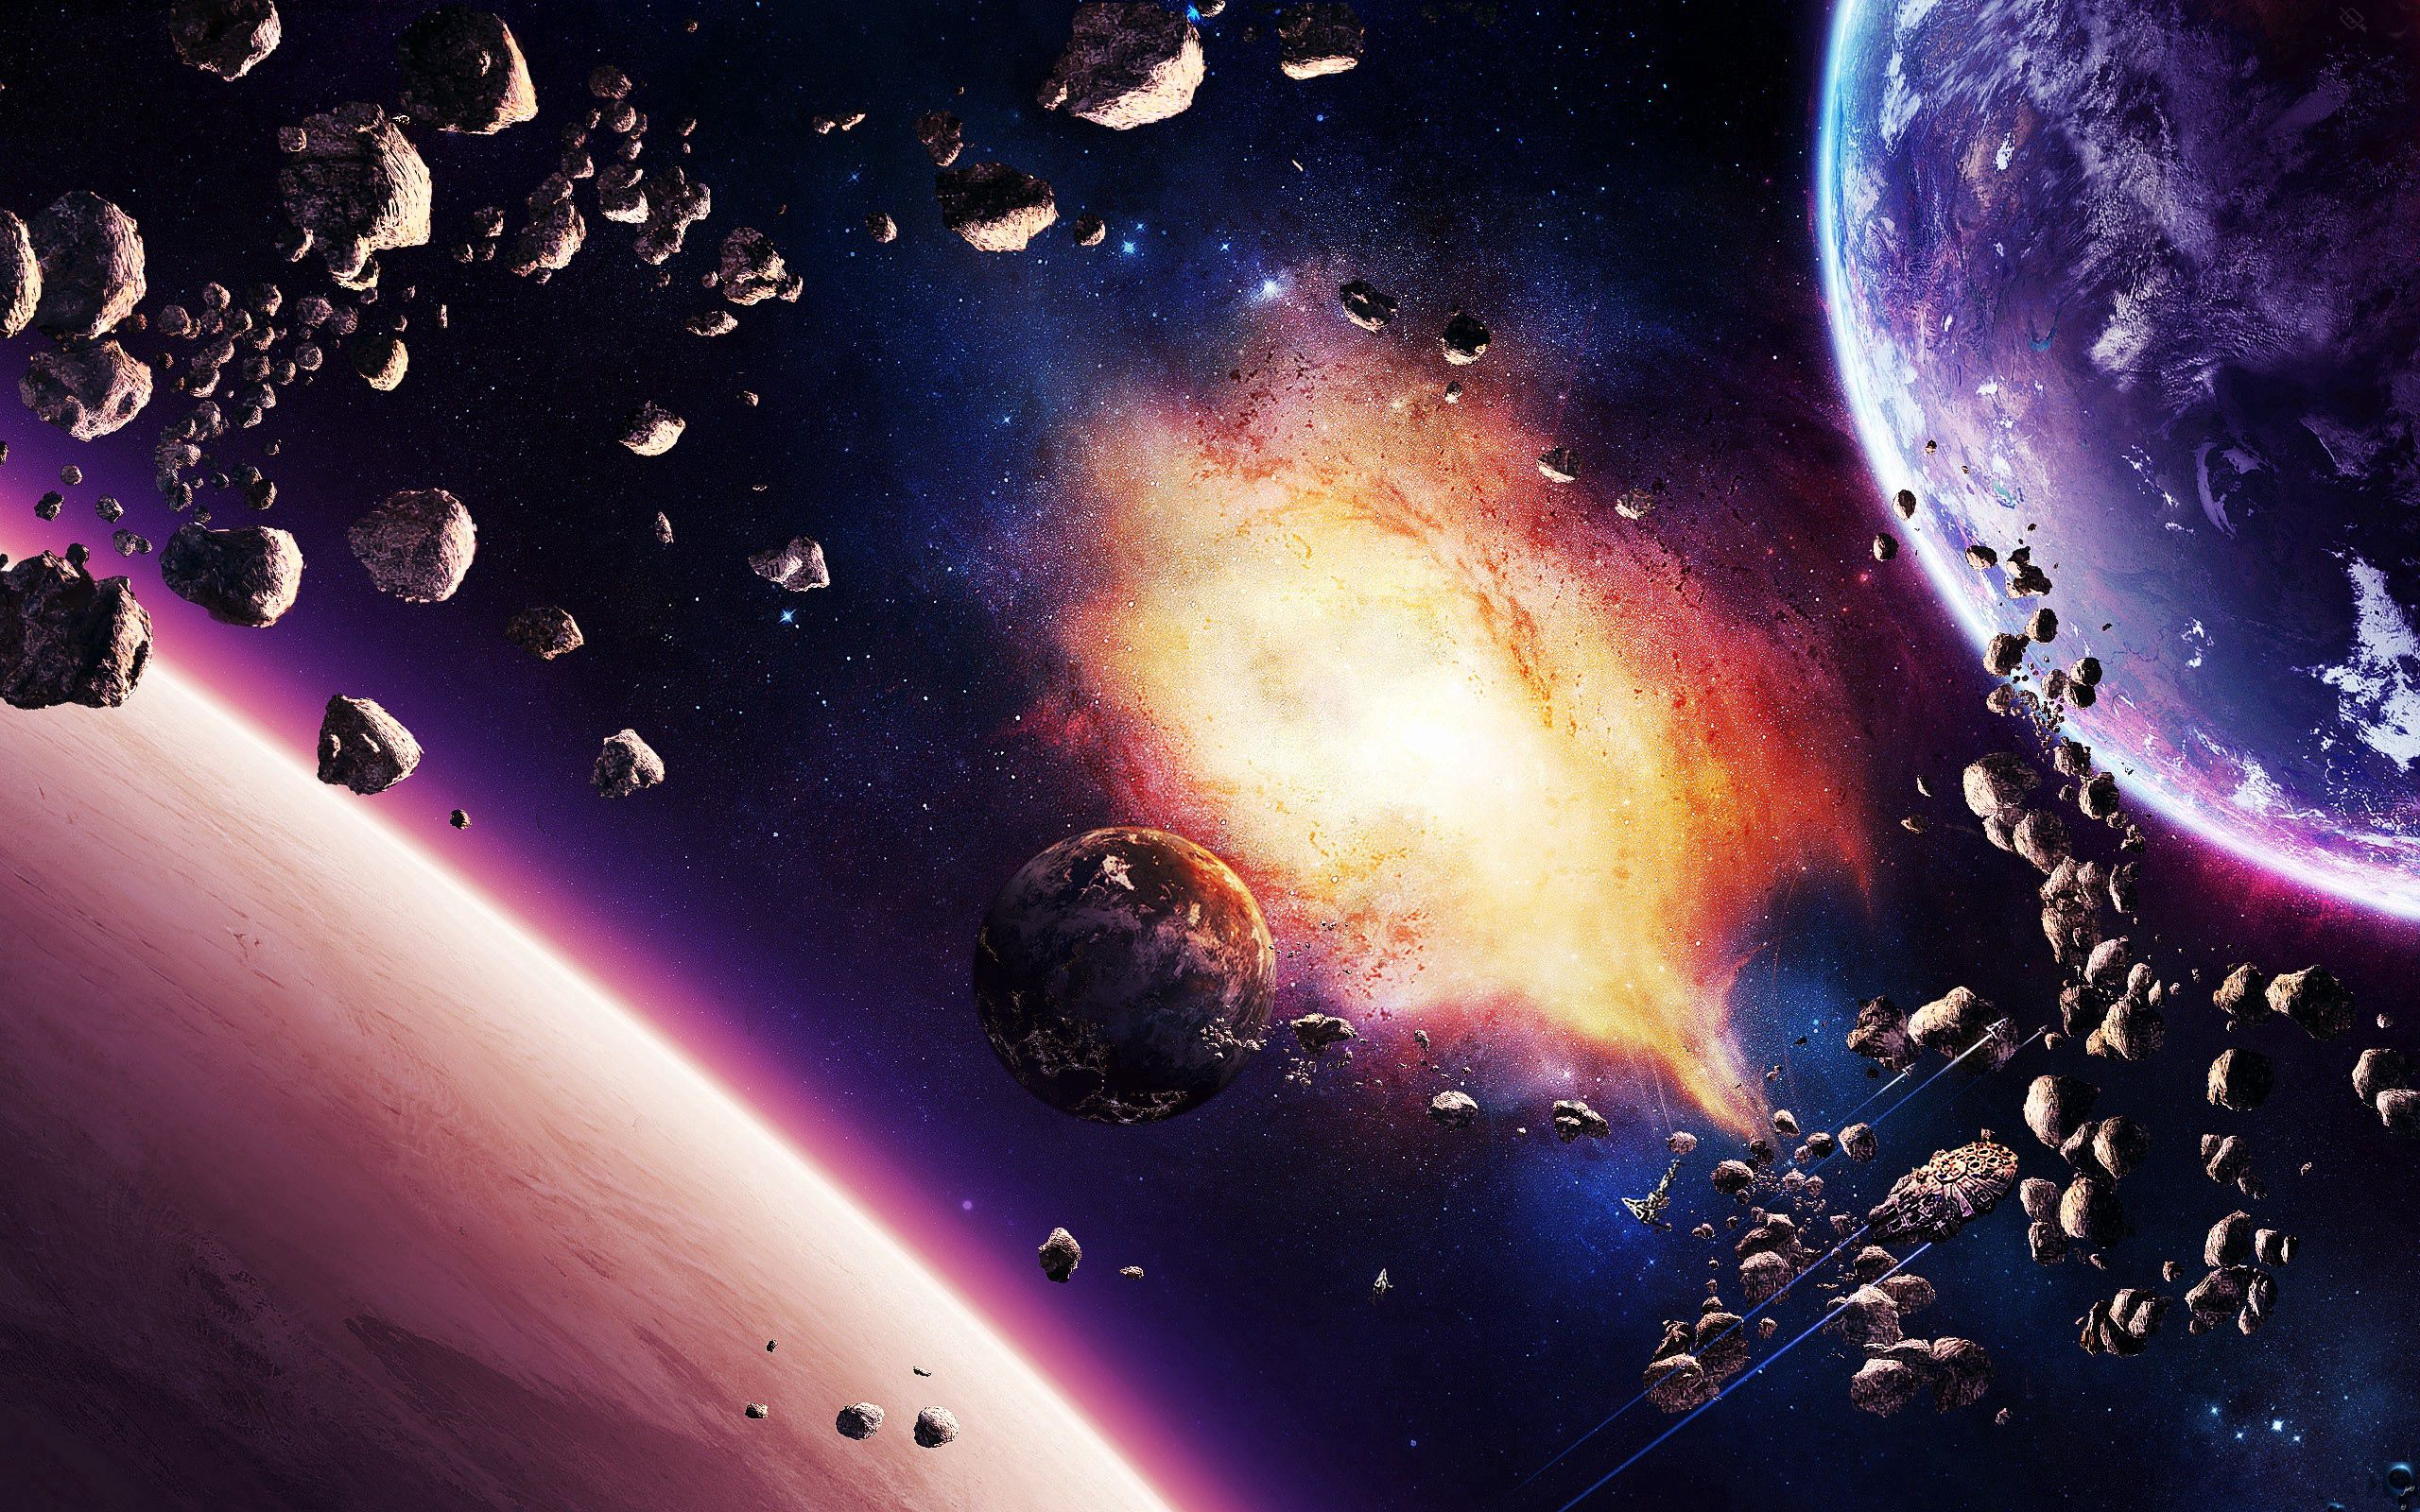 65738 download wallpaper Universe, Planet, Explosion, Shine, Light screensavers and pictures for free